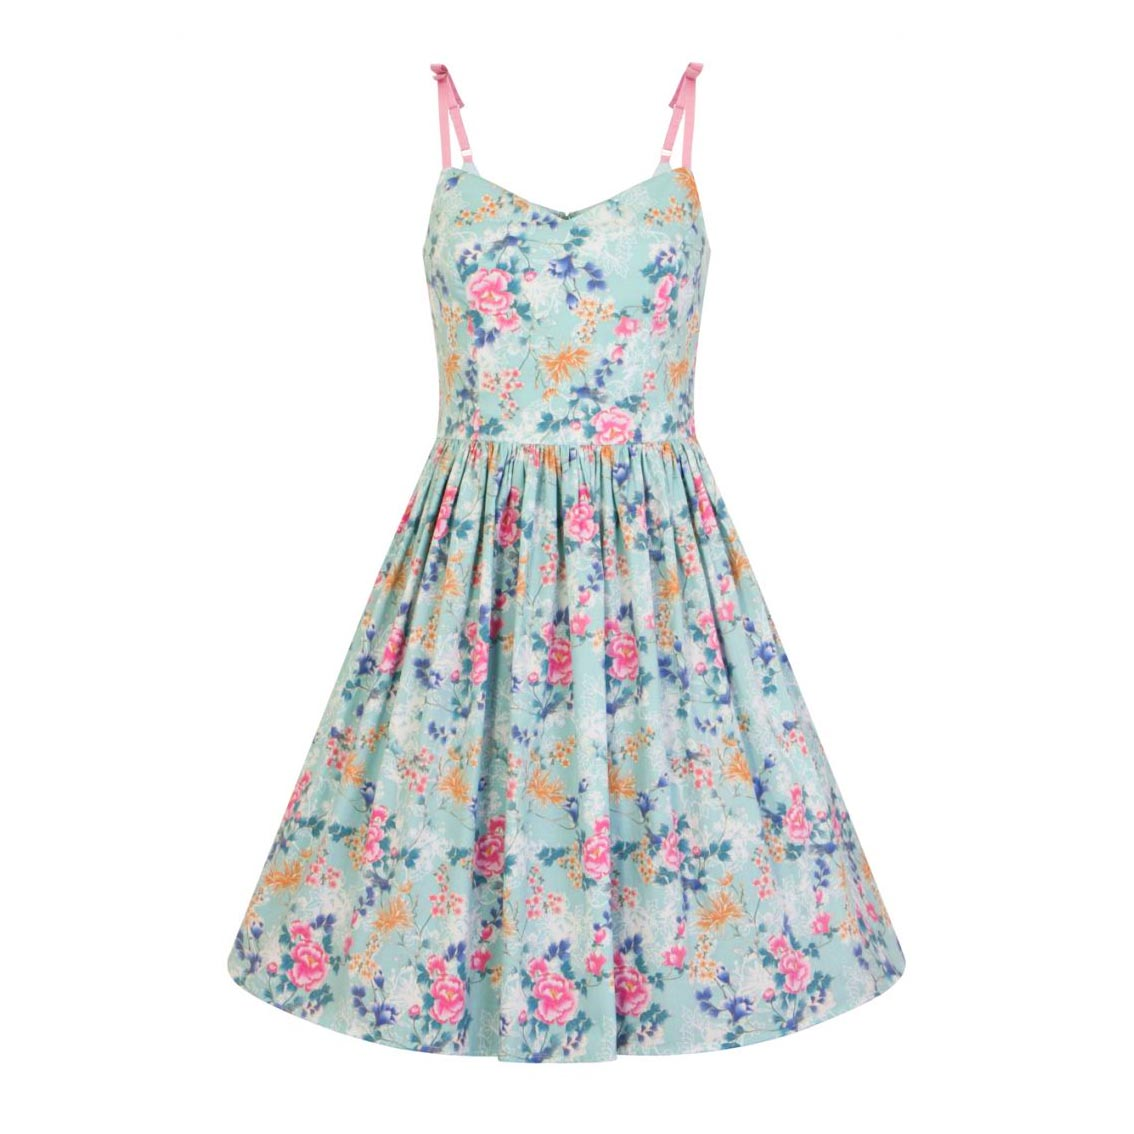 Hell-Bunny-50s-Mid-Length-Dress-Vintage-Blue-Pink-SAKURA-Flowers-Roses-All-Sizes thumbnail 28